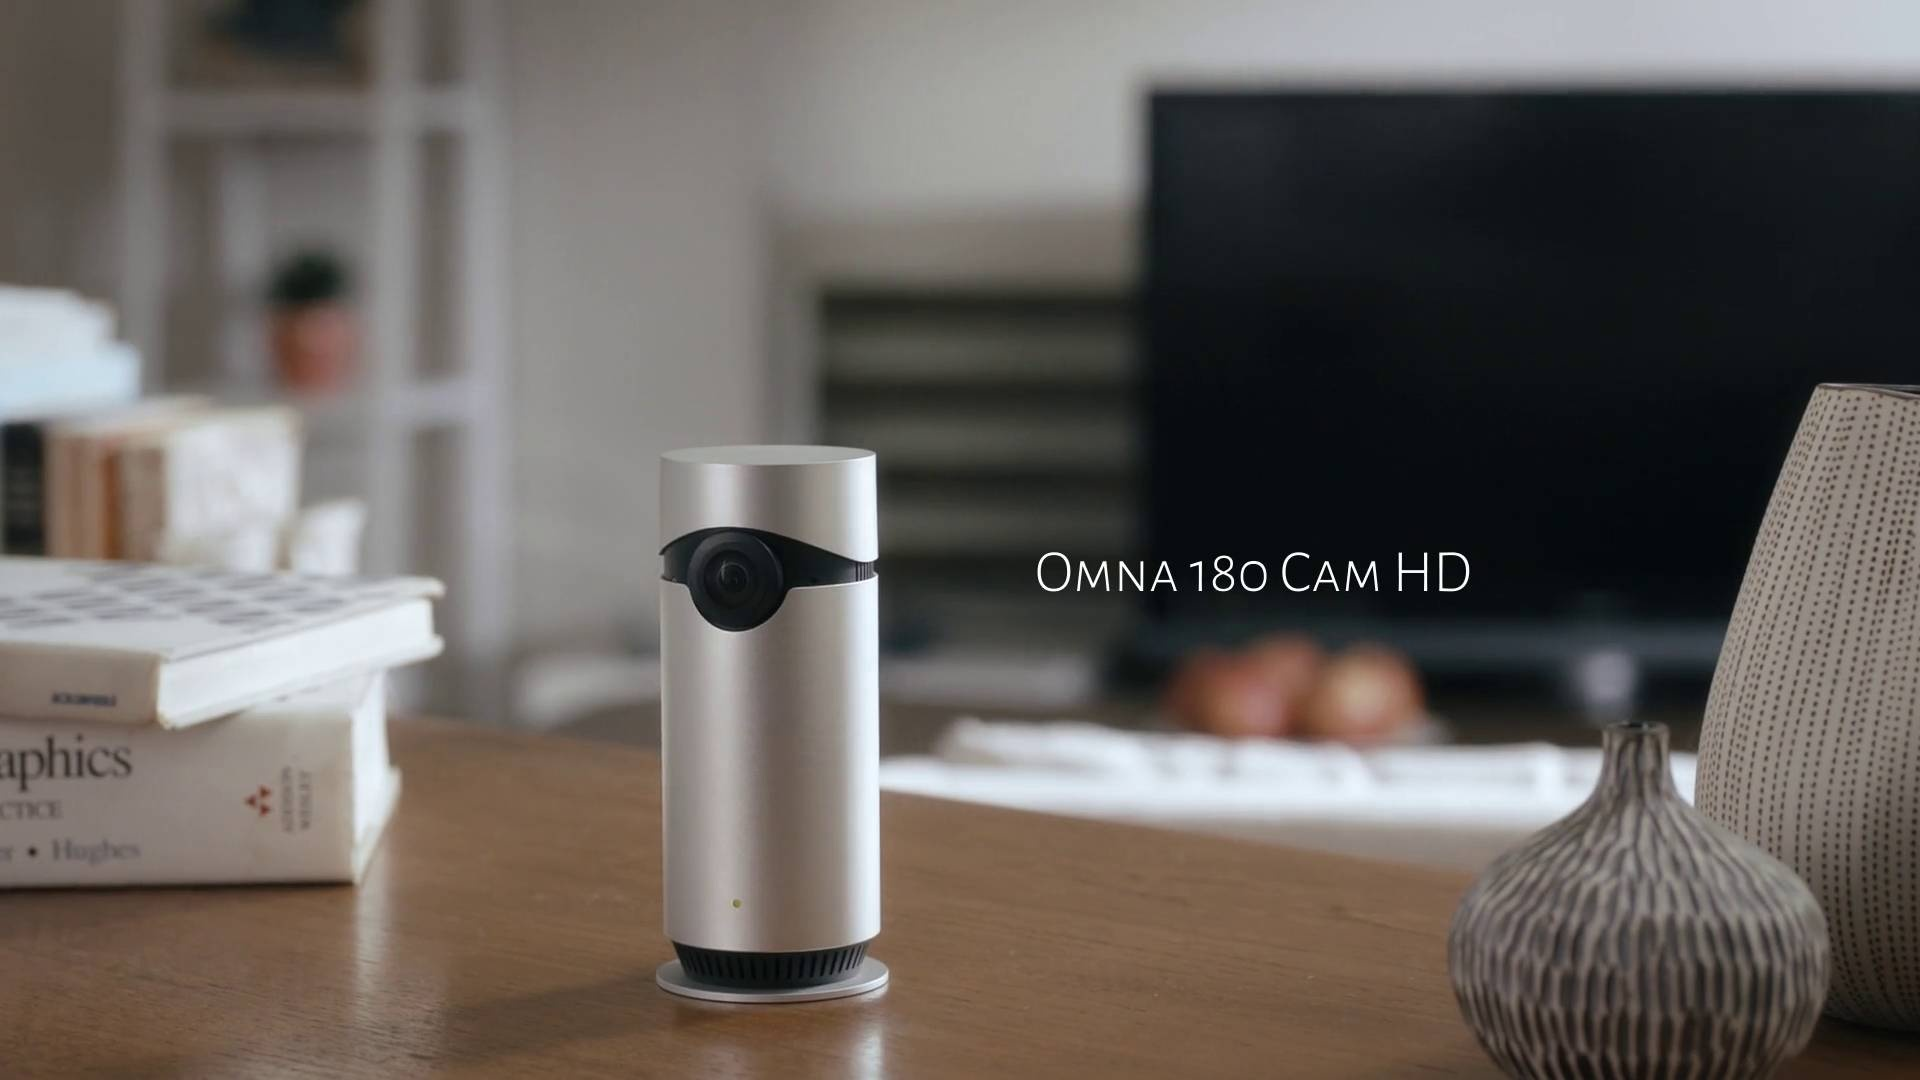 Wistia video thumbnail - Omna 180 CAM HD